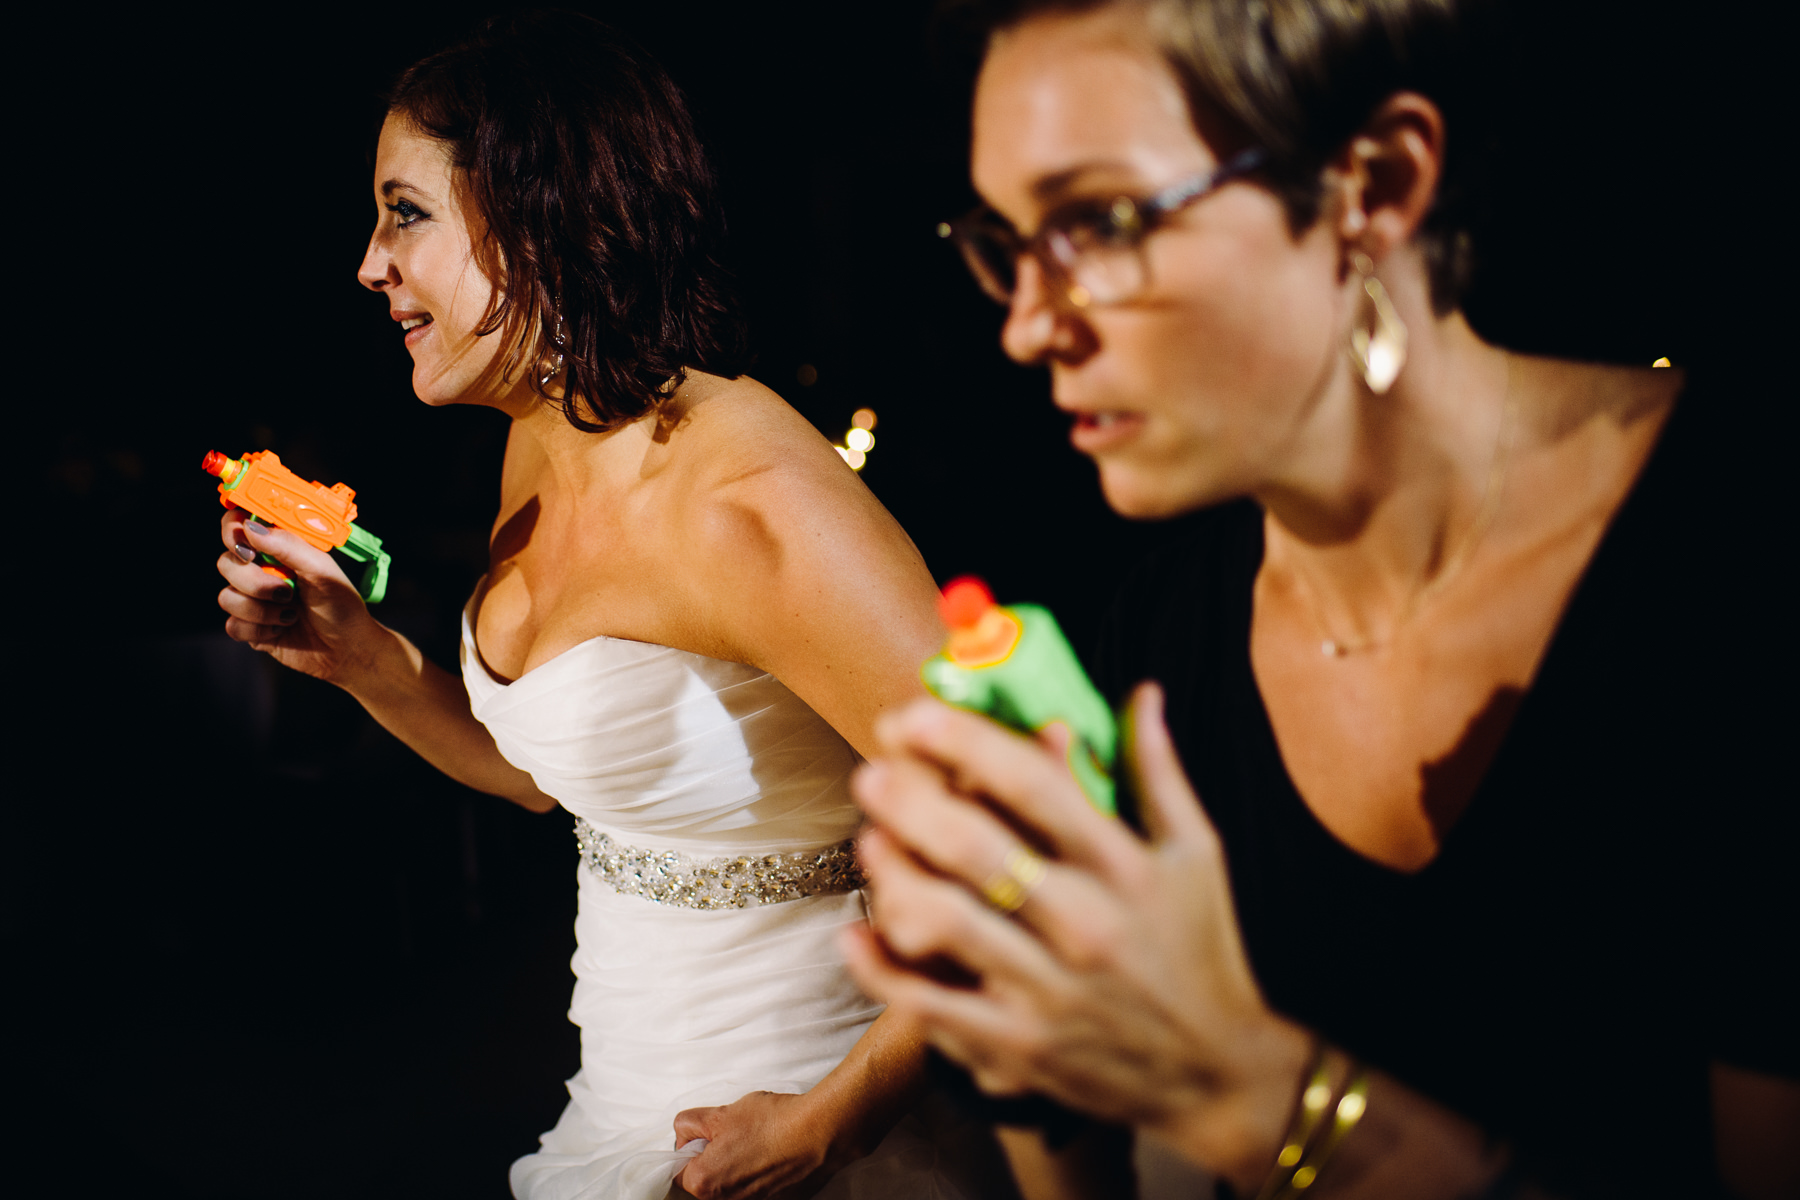 wedding nerf gun fight photos